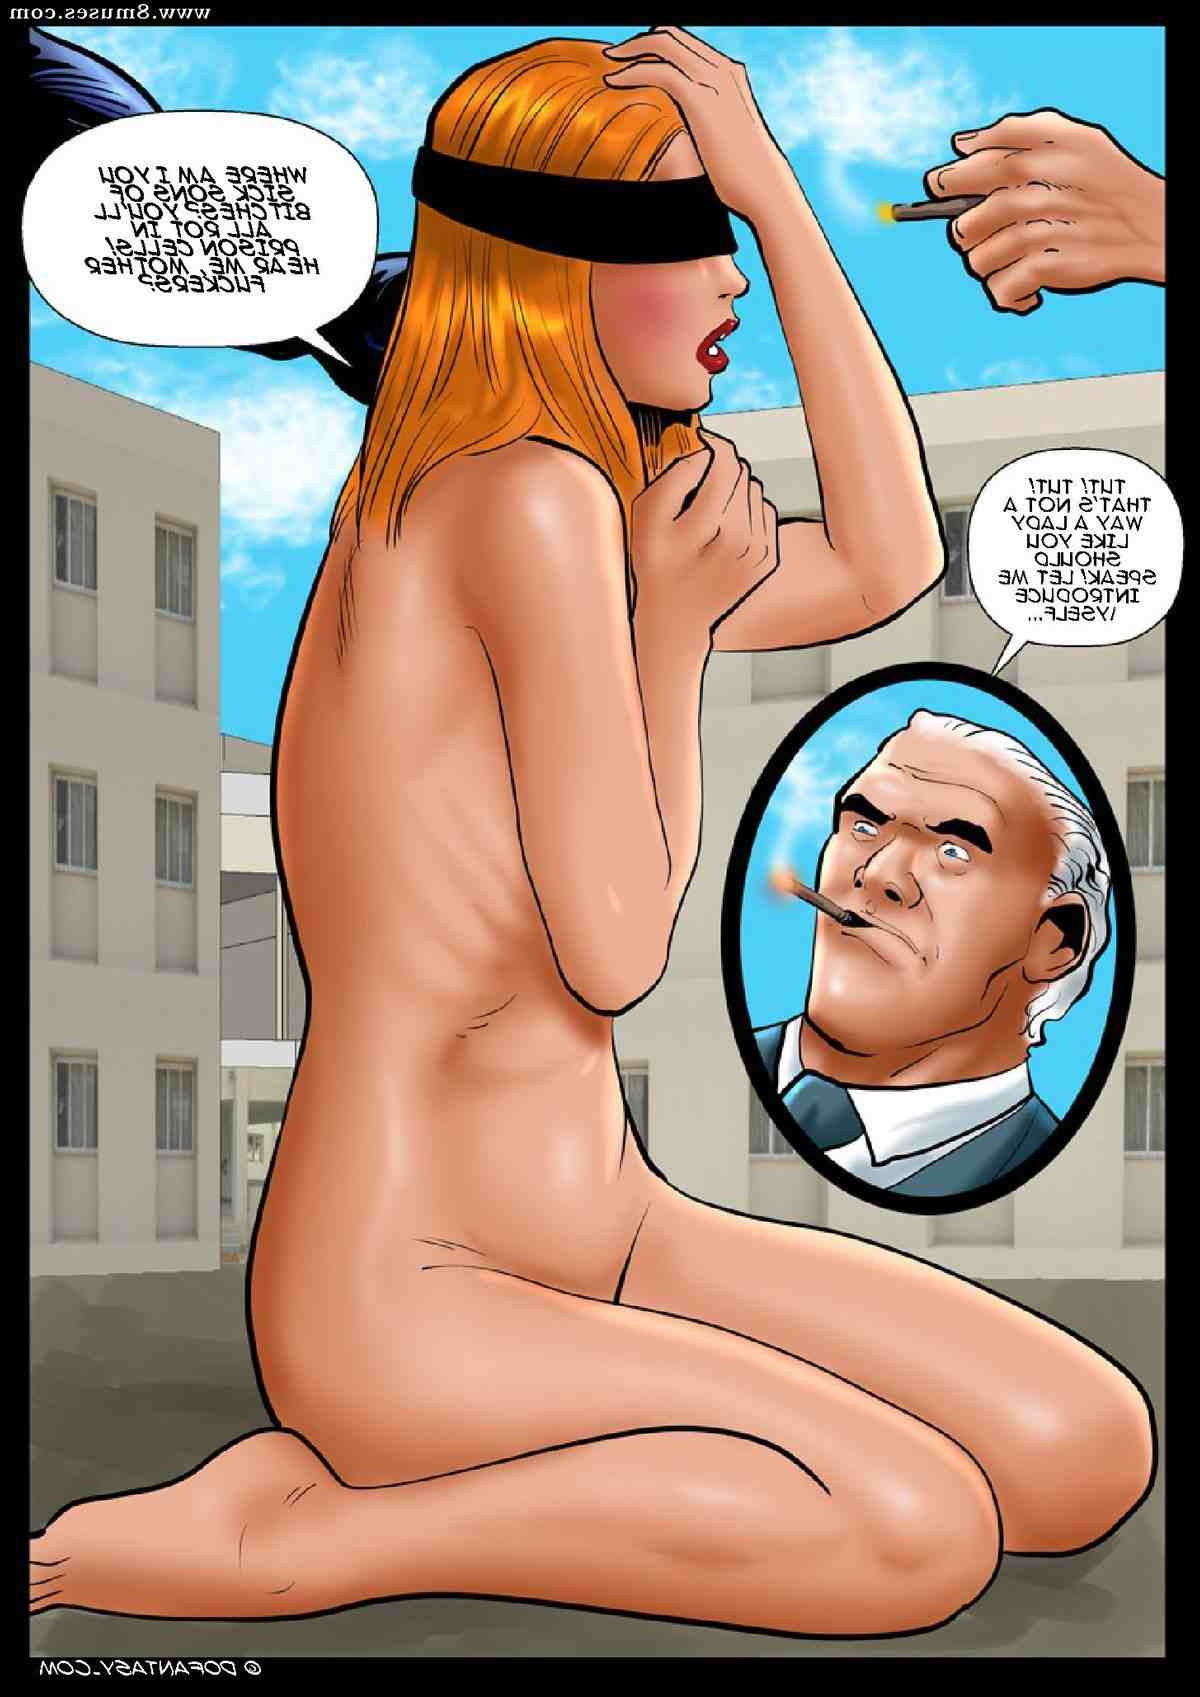 Fansadox-Comics/401-500/Fansadox-413-A-Bold-Officer-Cagri Fansadox_413_-_A_Bold_Officer_-_Cagri__8muses_-_Sex_and_Porn_Comics_9.jpg